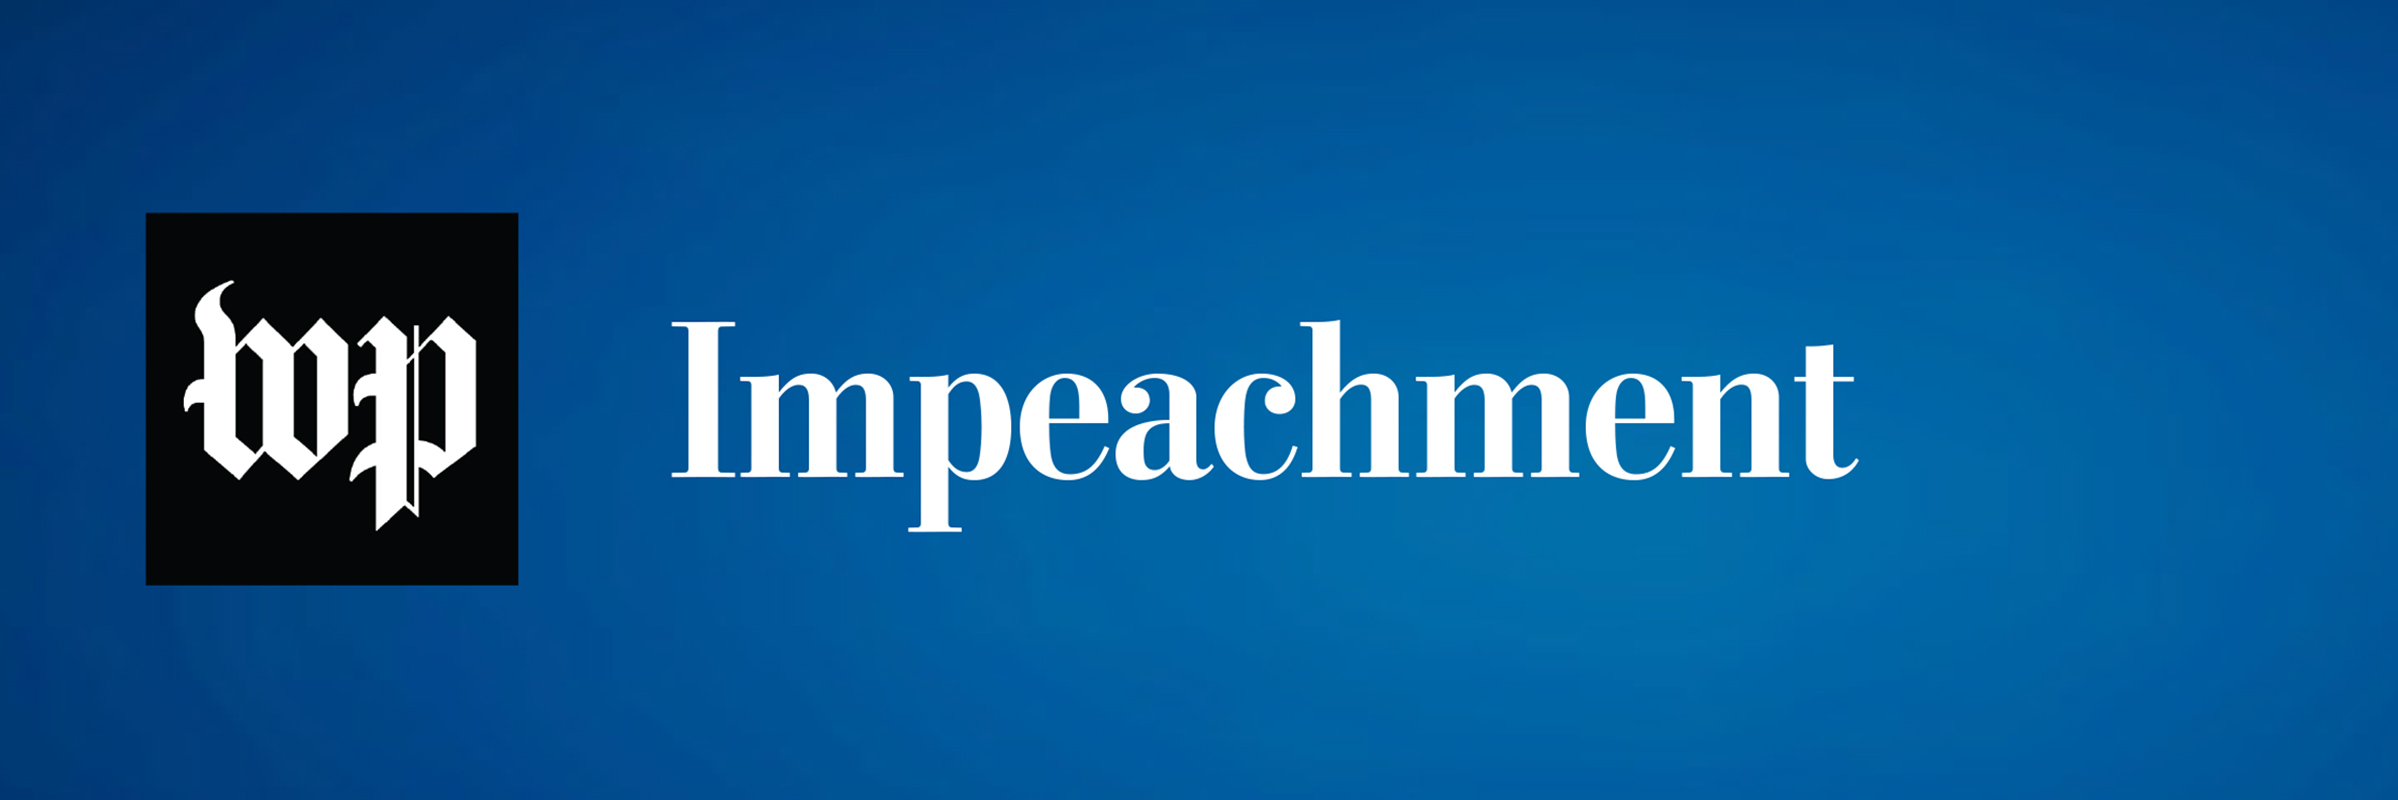 Impeachment: Updates from The Washington Post Series Cover Image